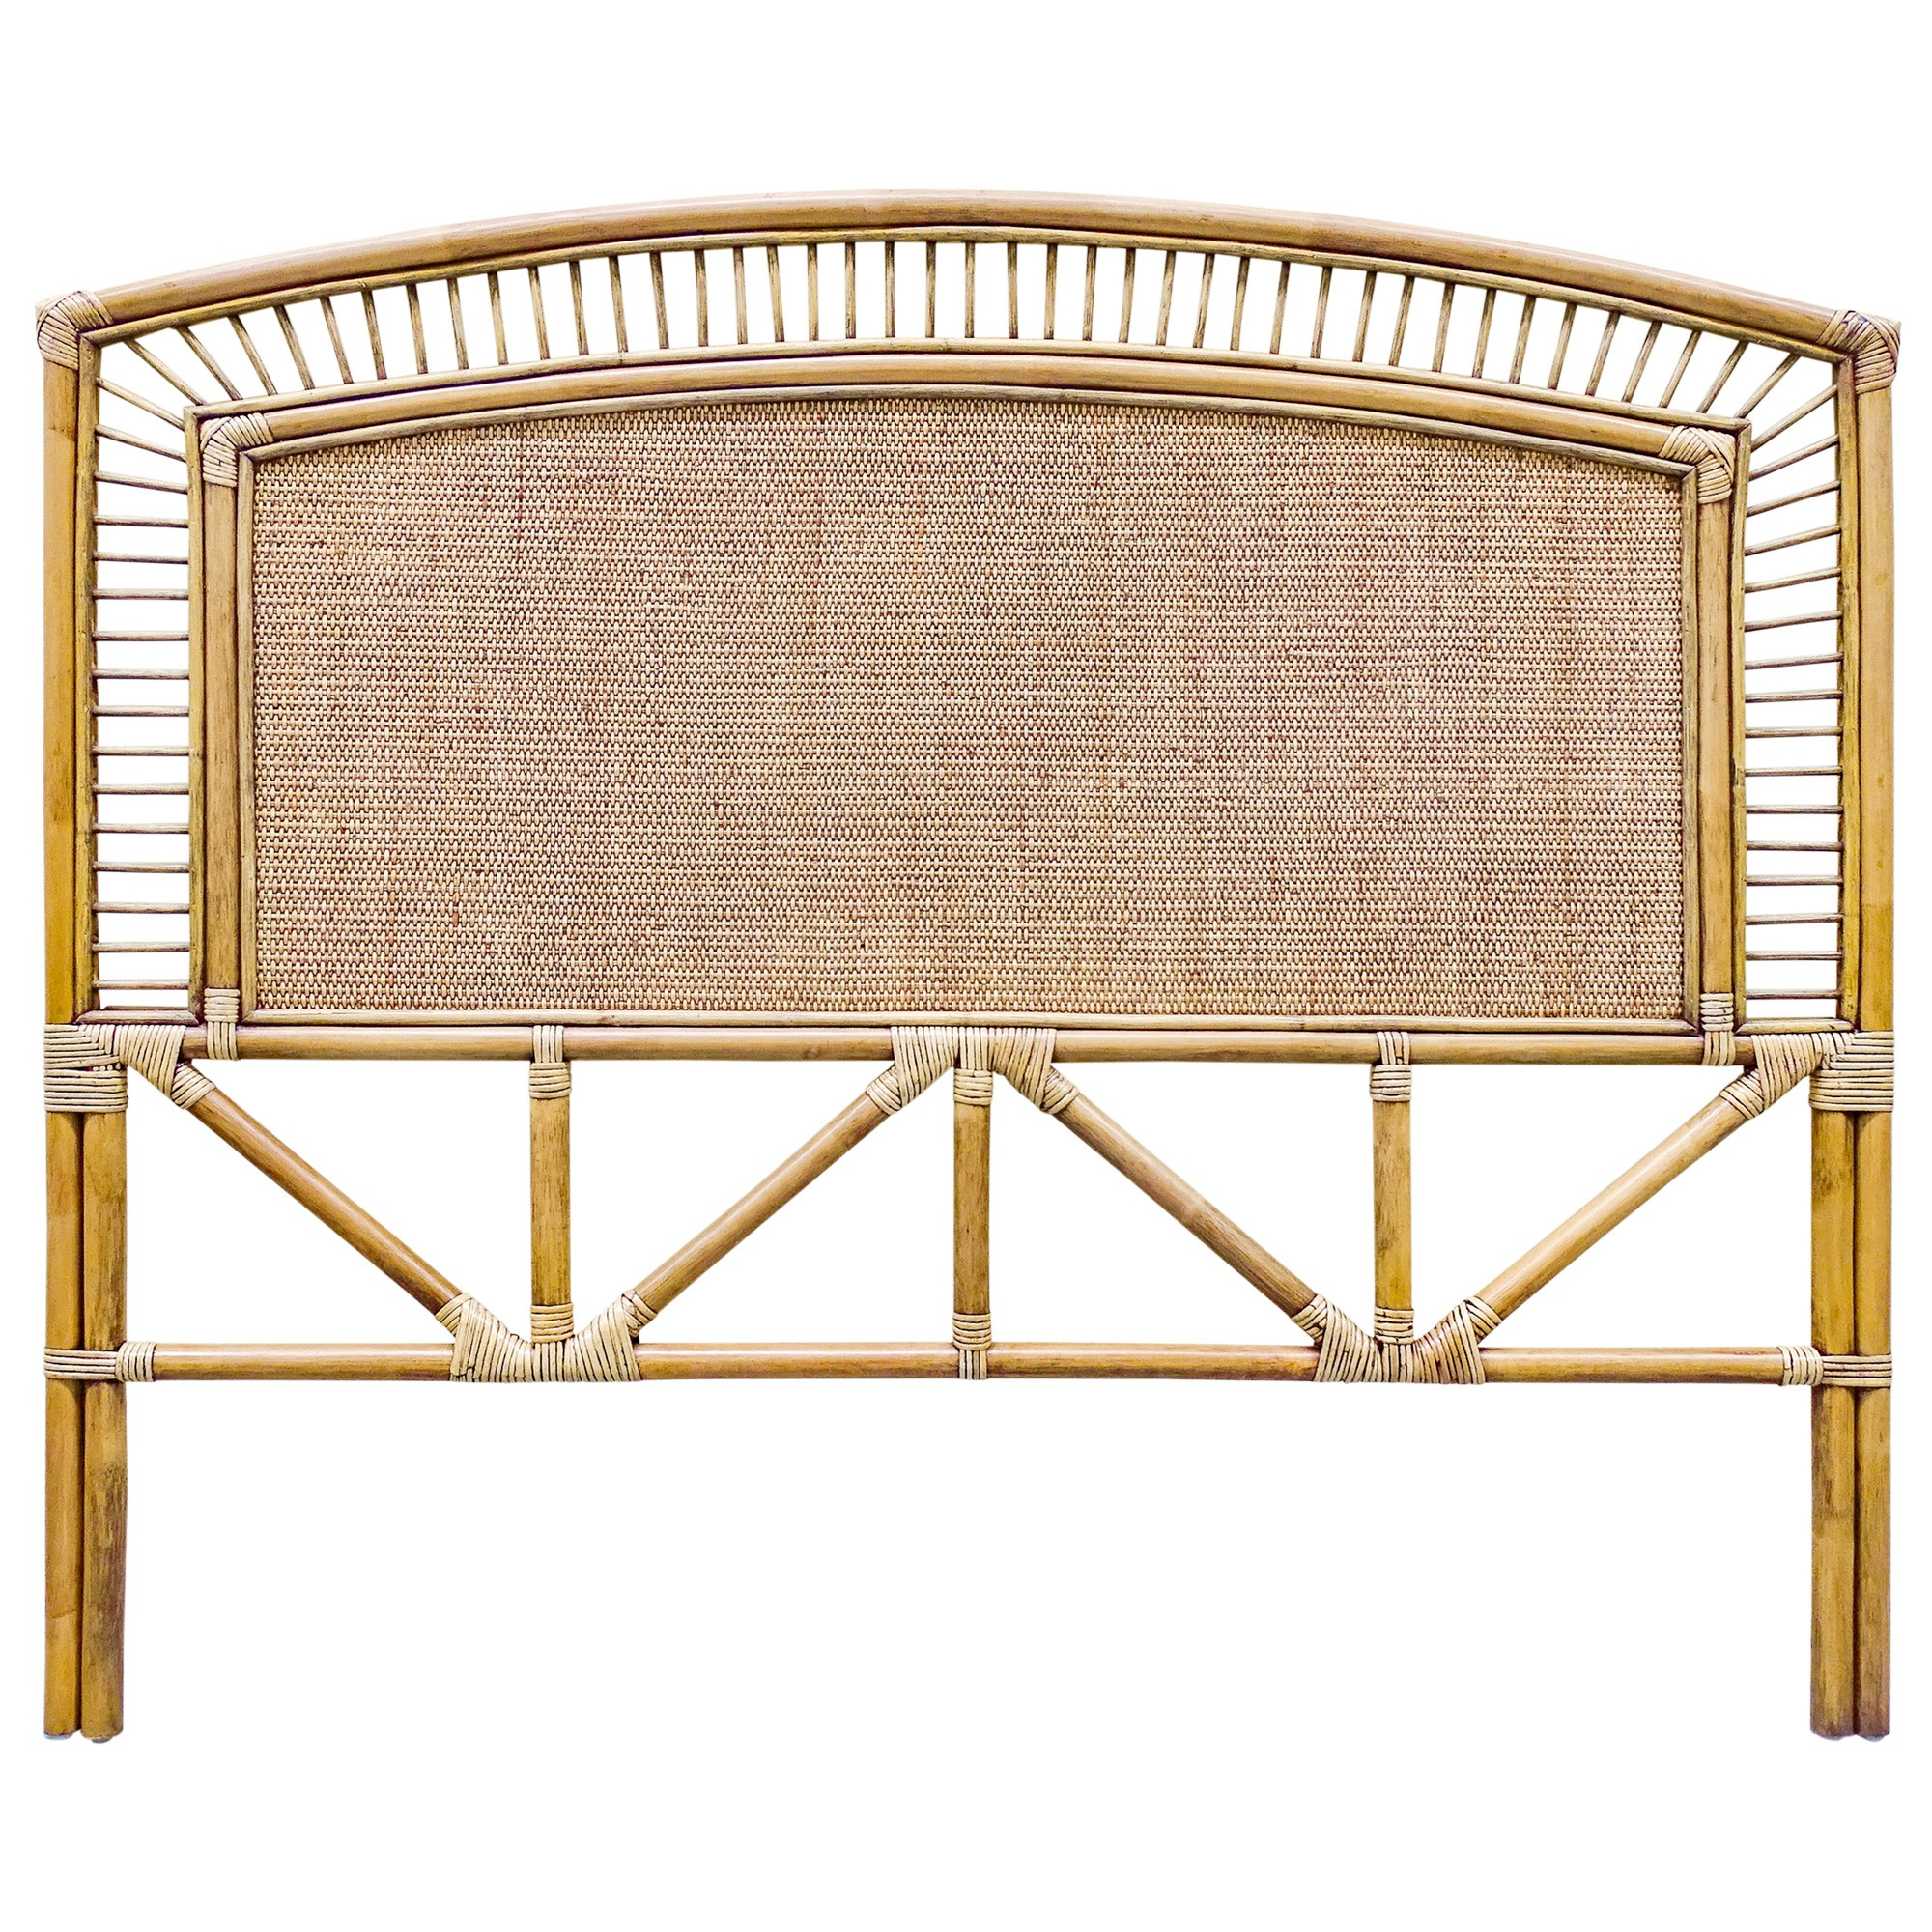 Sarah Bamboo Rattan Bed Headboard, Queen, Toffee